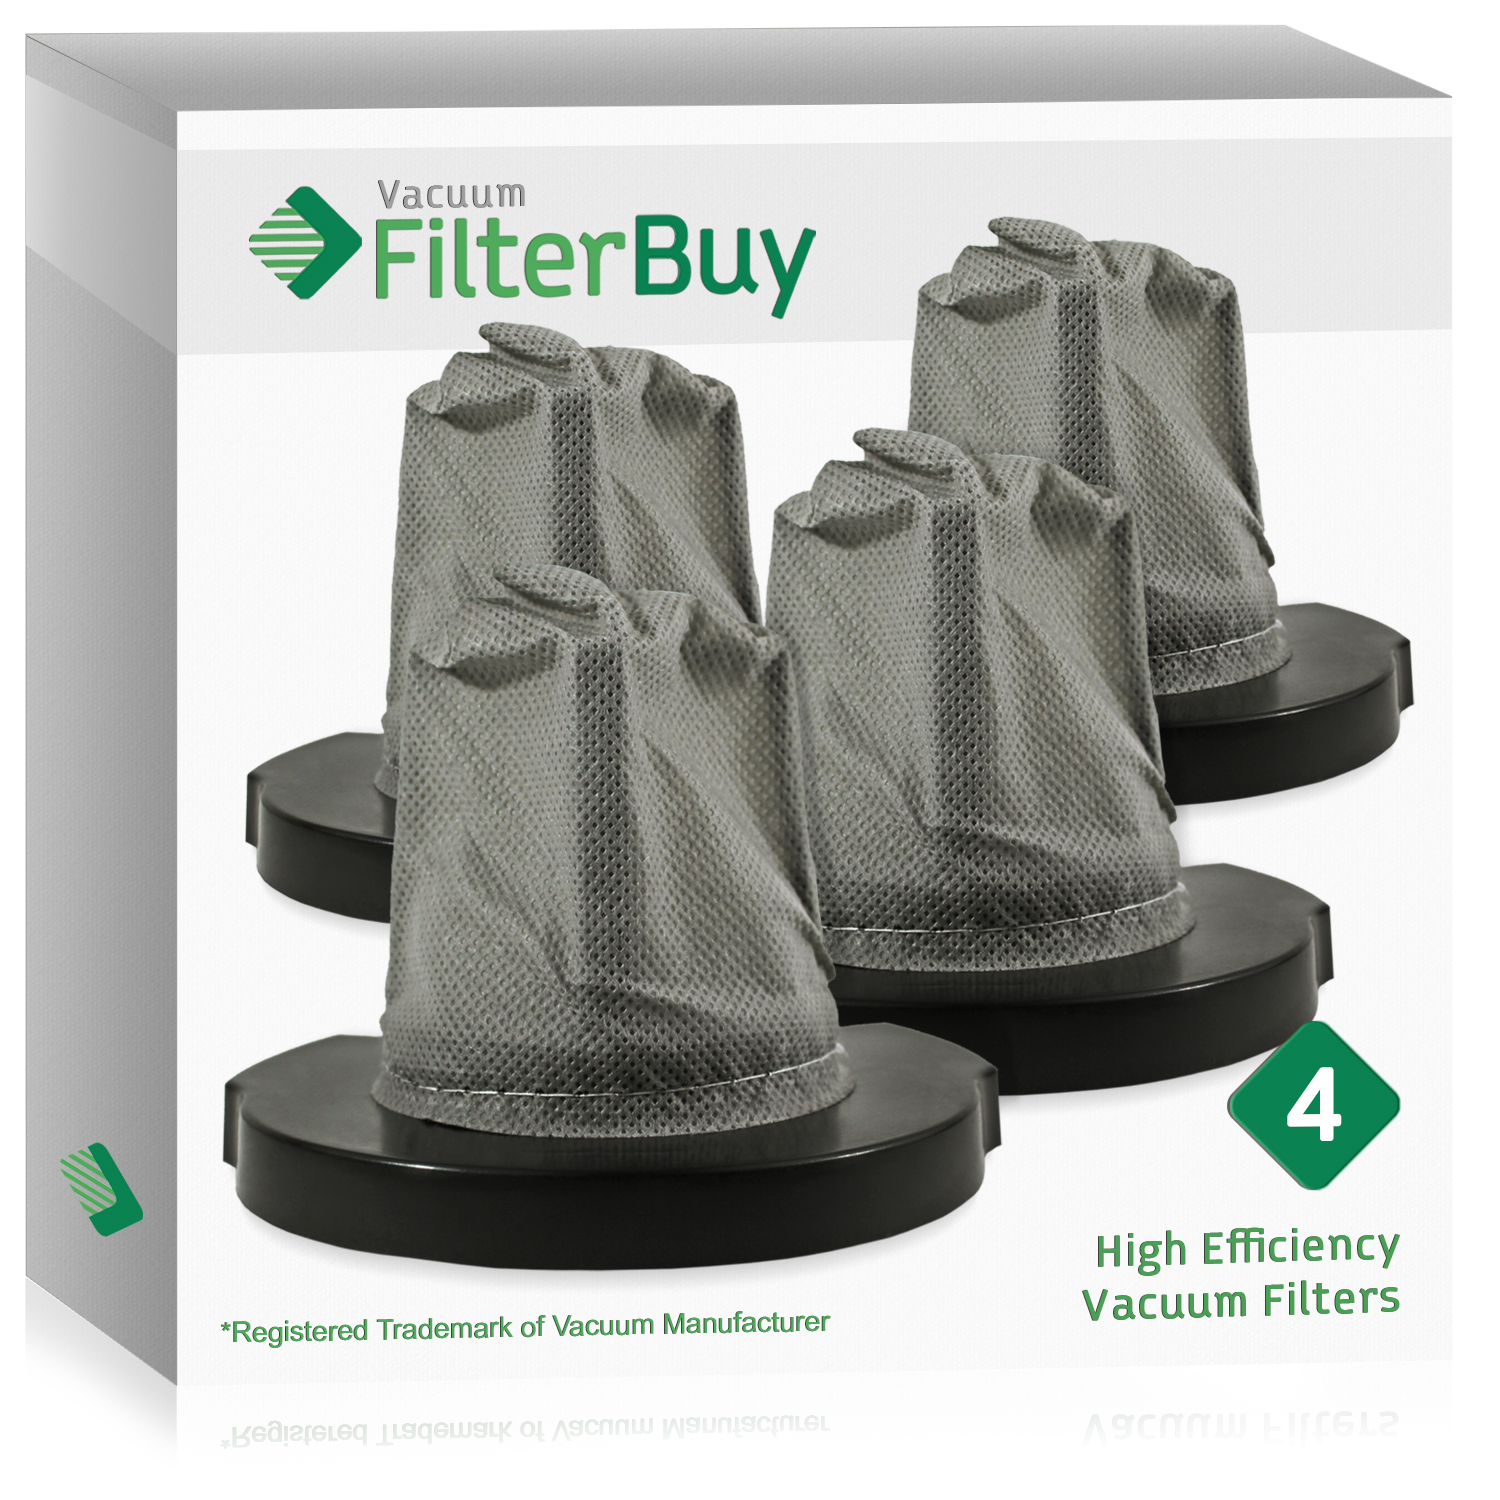 4 - FilterBuy Eureka Stick Vac Filters, Part # 60796. Designed by FilterBuy to fit Eureka 4 in 1 Stick Vac Models 160A, 92A & 166 Series Vacuum Cleaners.